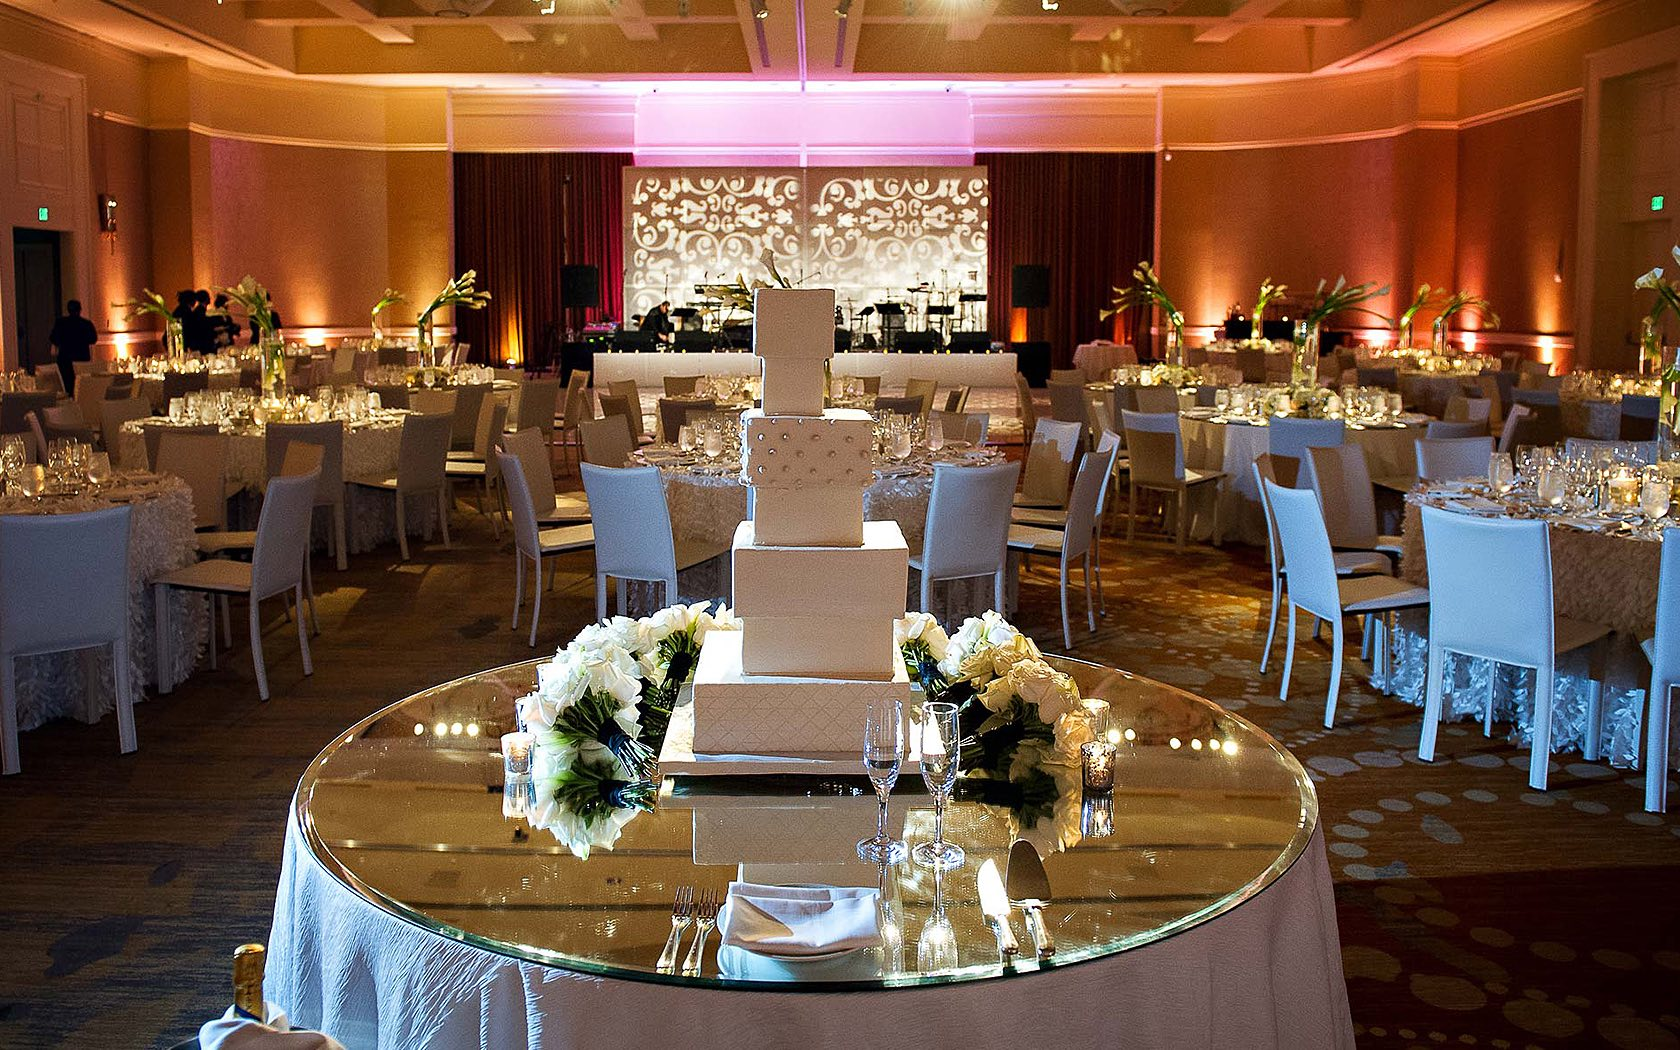 wedding event space with stage in background and round glass table with white presents in foreground